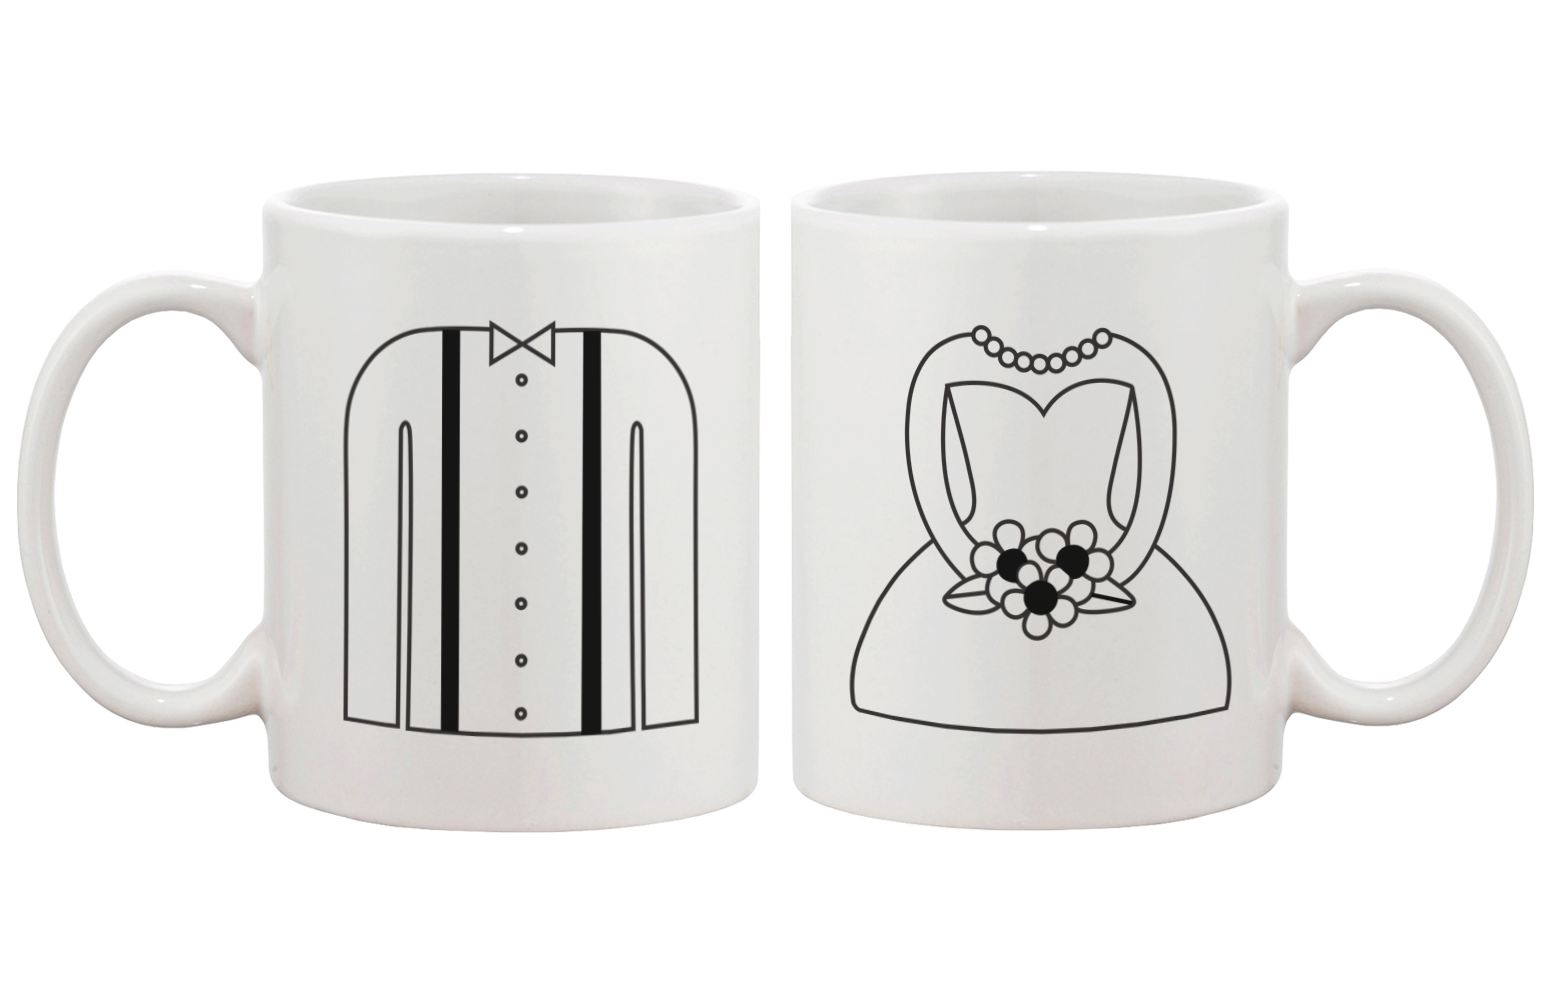 [Custom] Forever One and Only - Cute Tuxedo and Wedding Dress His & Her Mug Cup Set